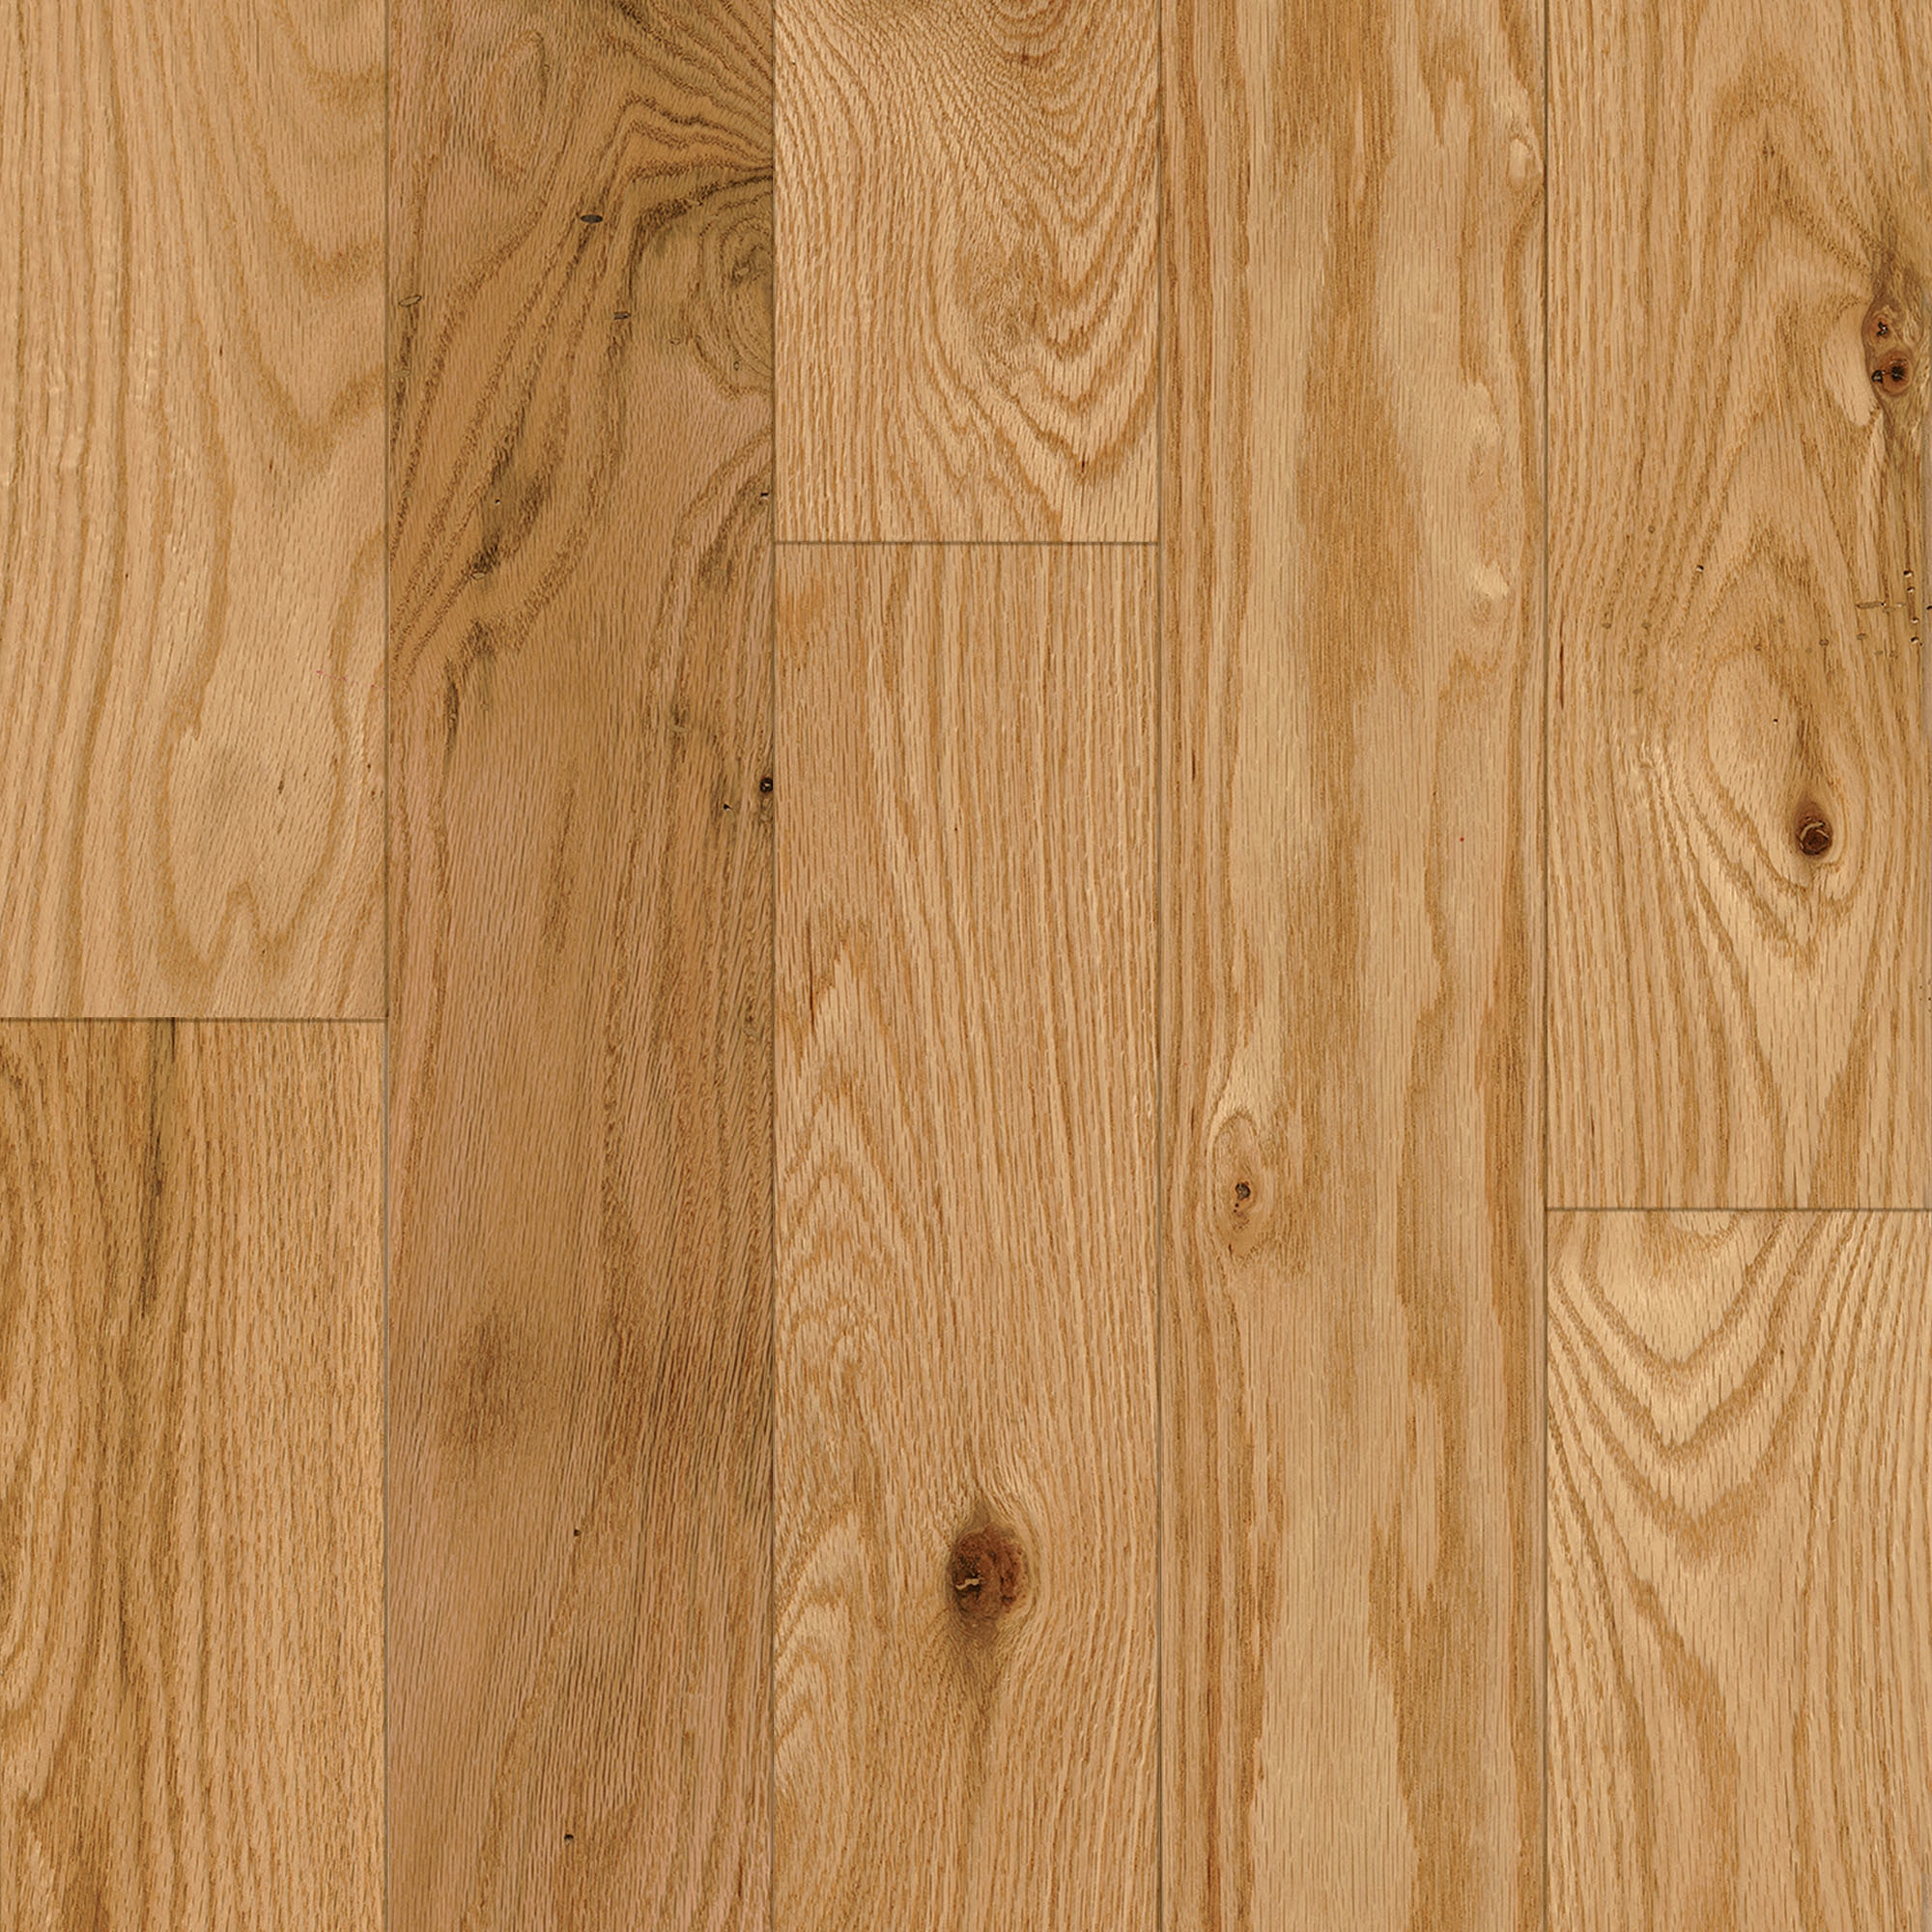 Amazing Hardwood Flooring Prices Australia For Your Home Decor